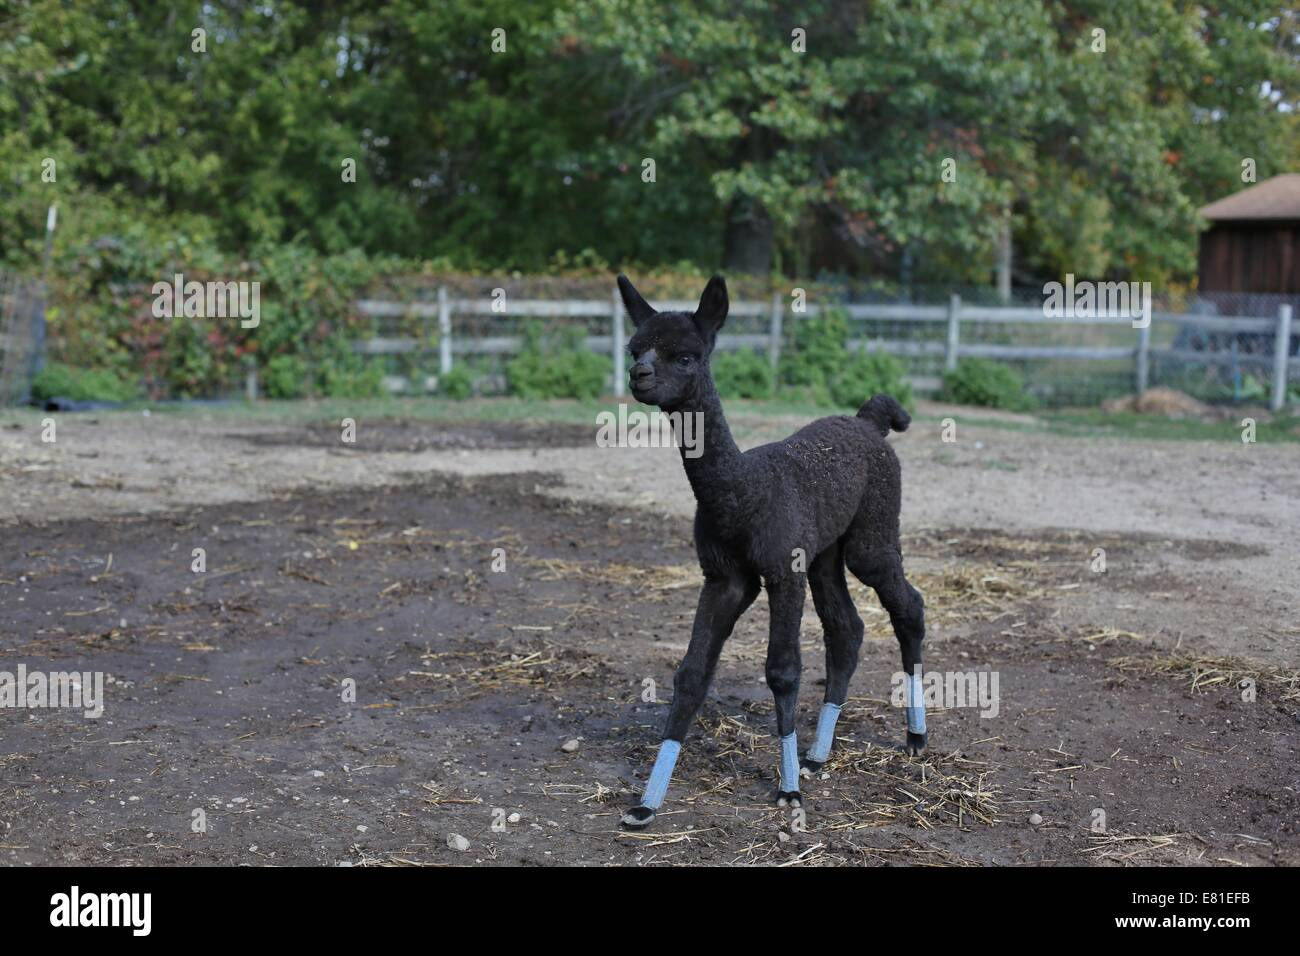 A young alpaca with bandages on her feet. - Stock Image